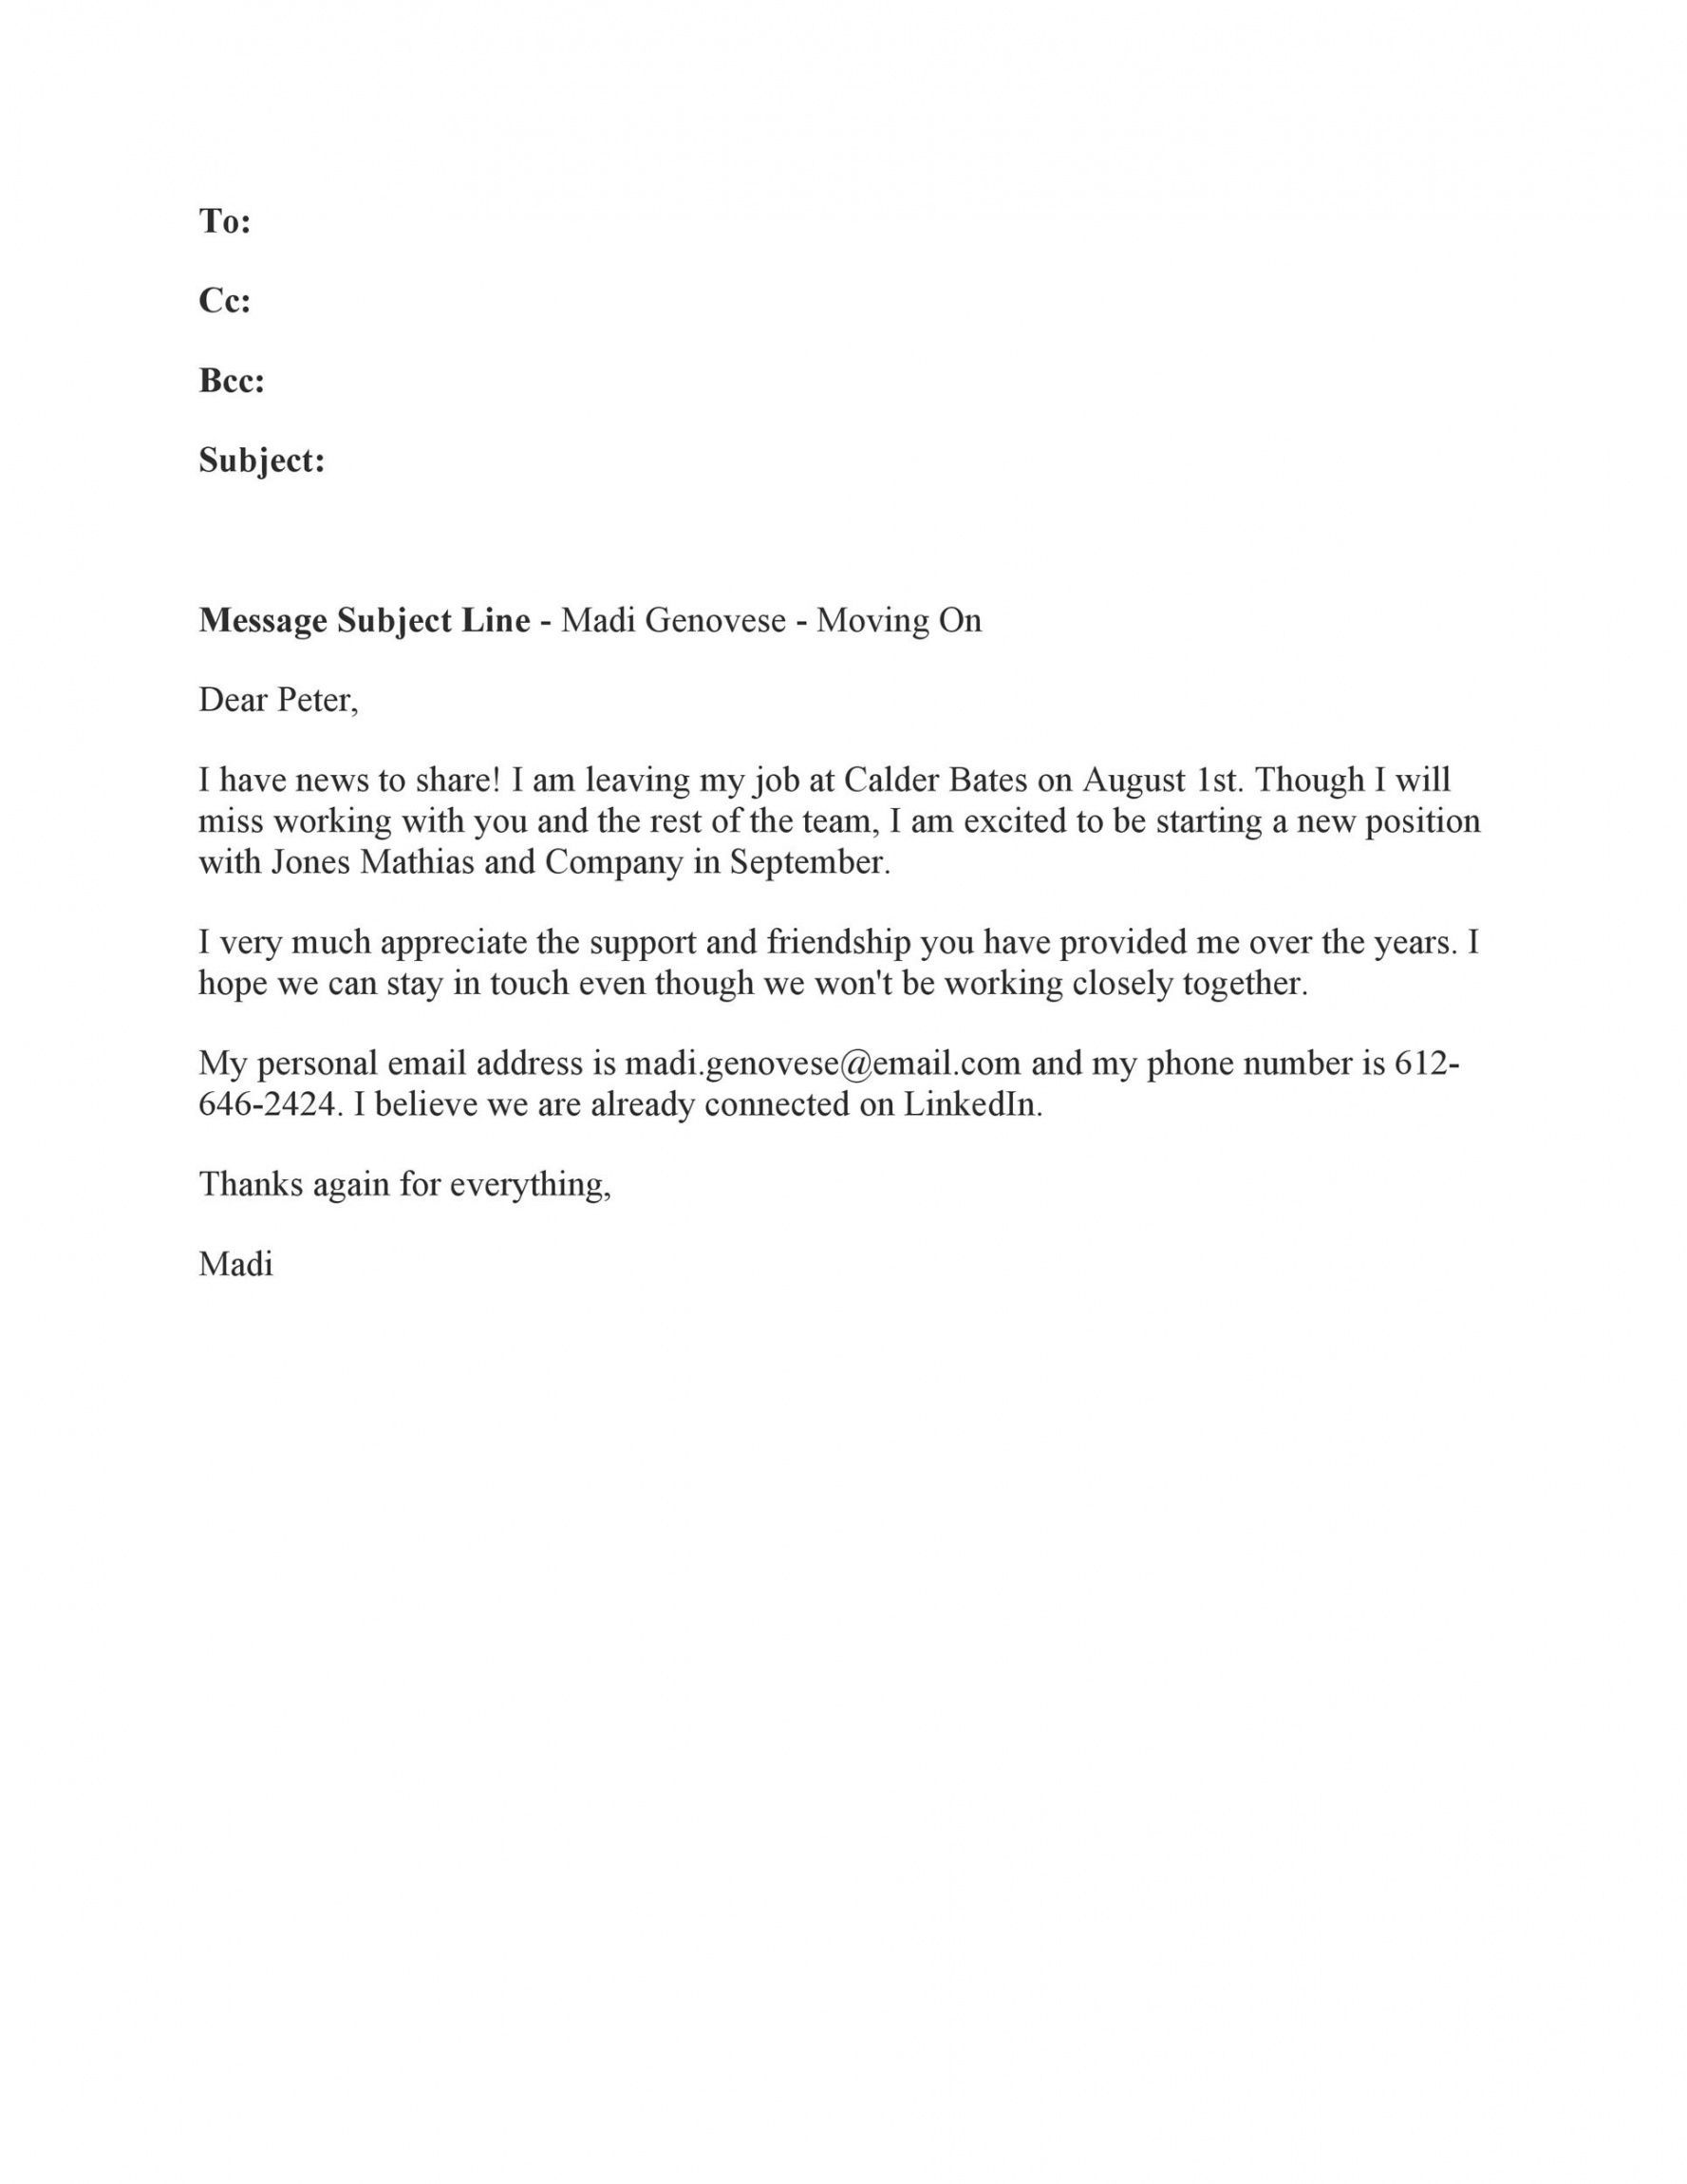 Browse Our Image Of Heartfelt Resignation Letter To Coworkers For Free Farewell Letter To Colleagues Goodbye Letter To Colleagues Resignation Letter